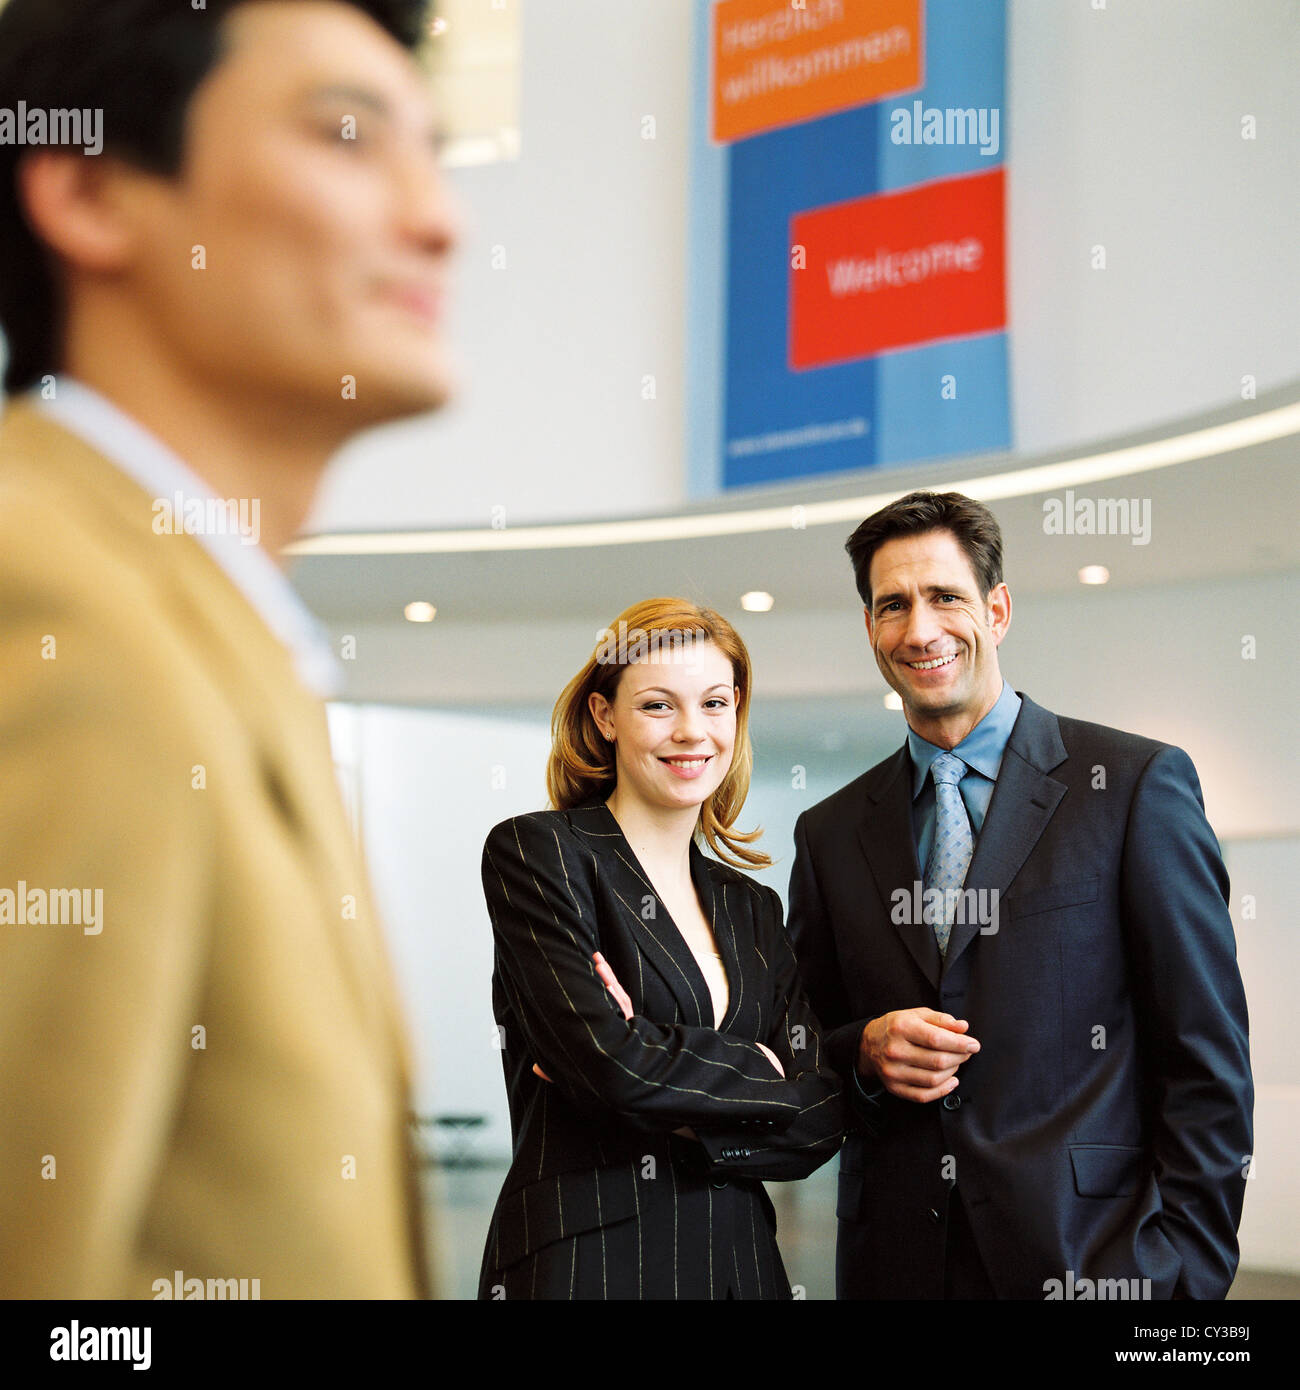 manager business man woman group License free except ads and outdoor billboards - Stock Image